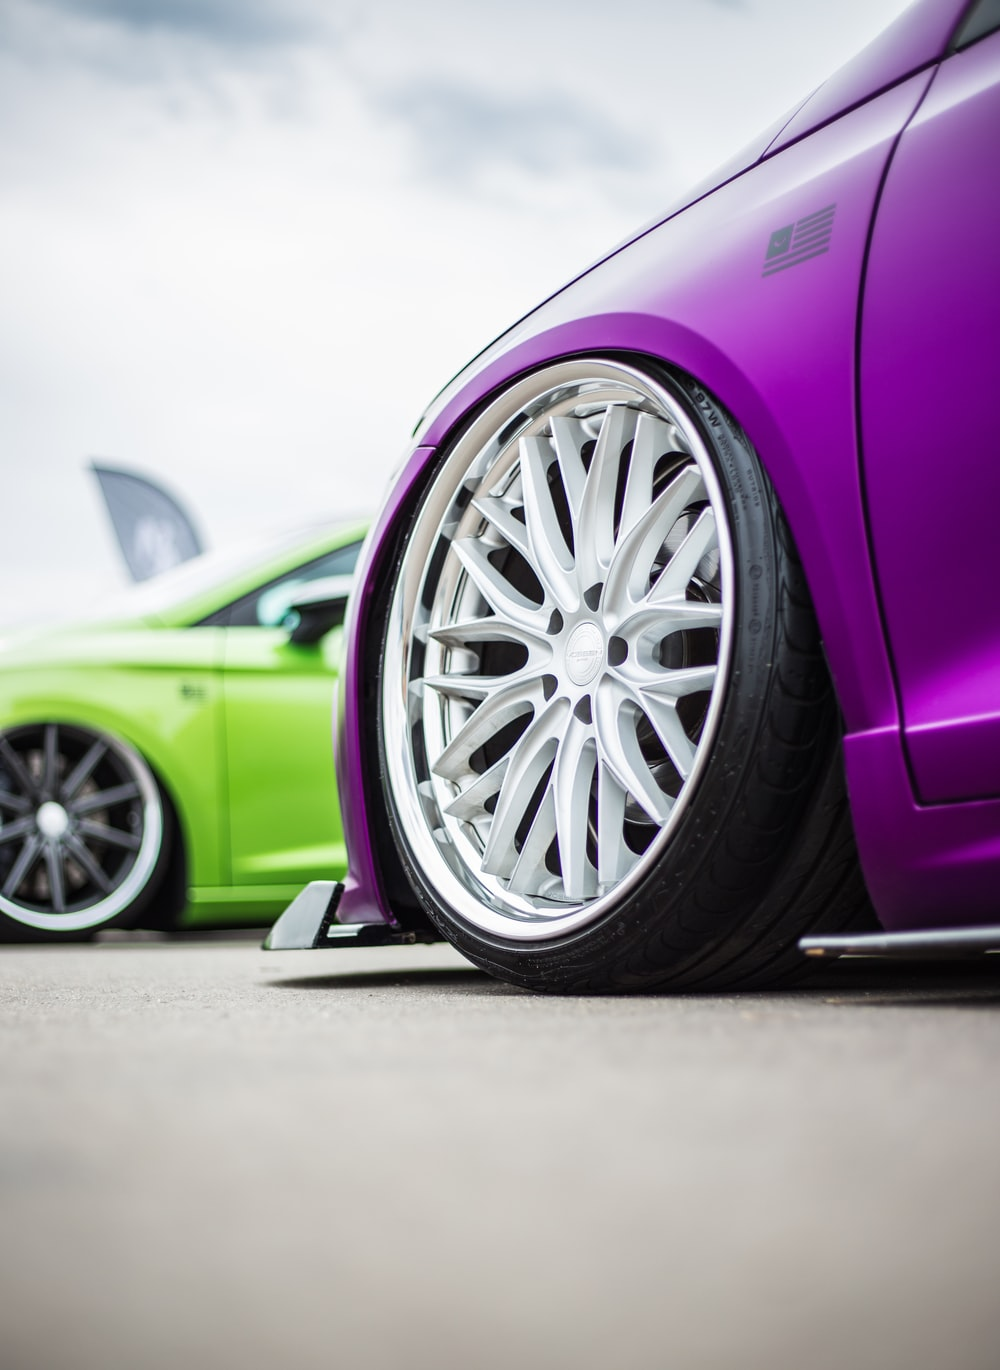 green and purple vehicles